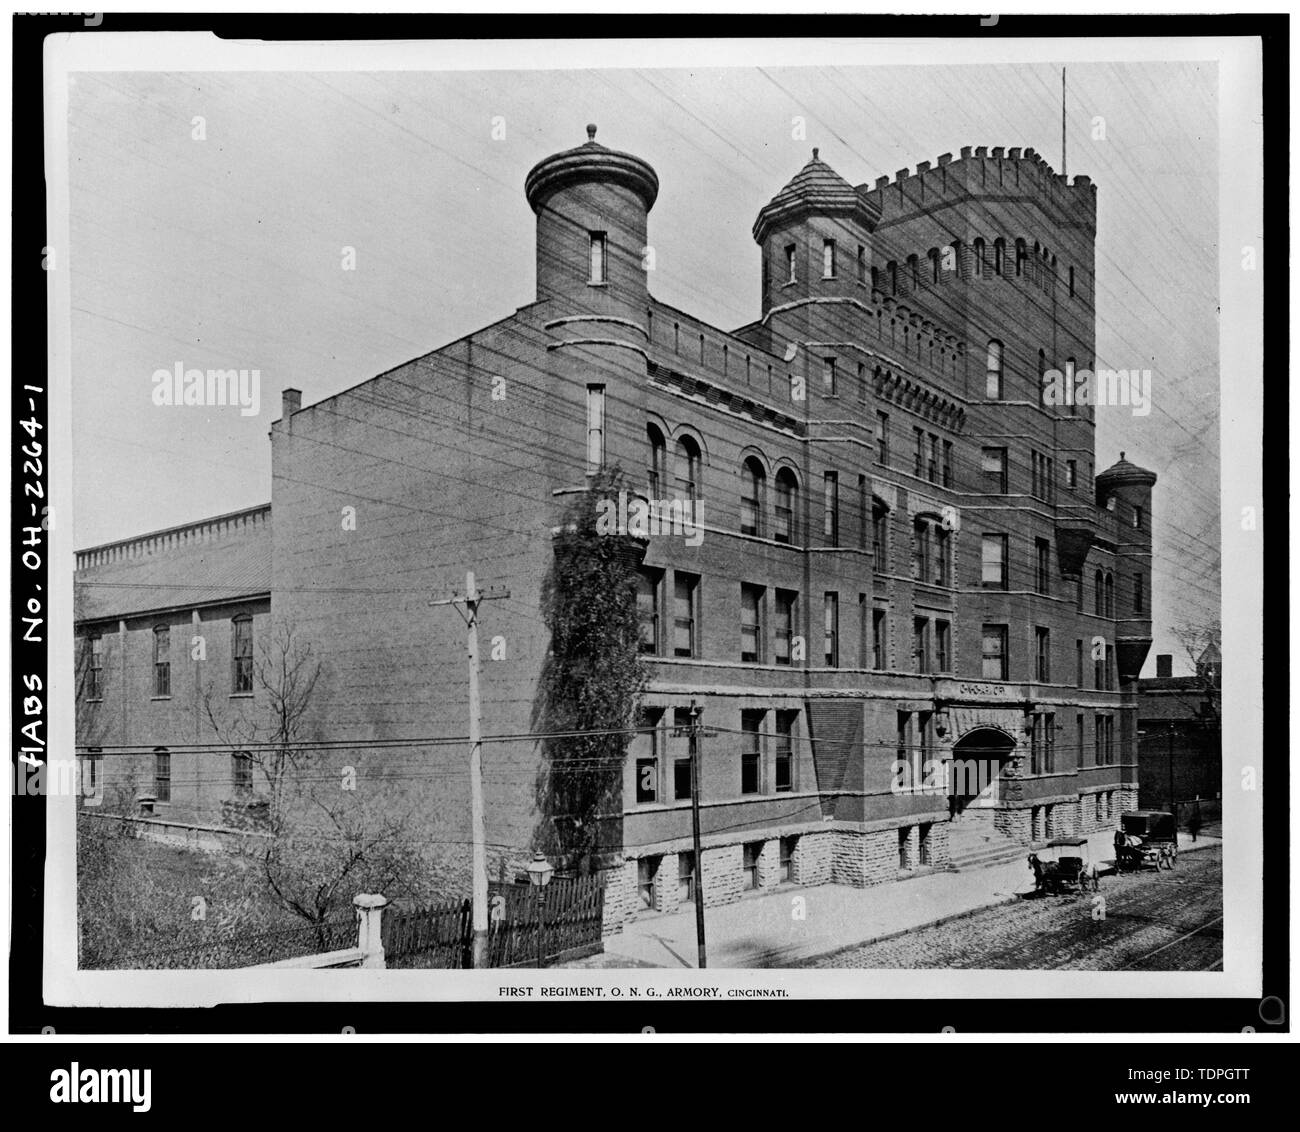 from 'Selections from Executed Work and Sketches,' Hannaford and Sons, Architects, circa 1893 VIEW NORTHWEST, SOUTH AND EAST (FRONT) ELEVATIONS - Ohio National Guard Armory, 1417-1437 Western Avenue, Cincinnati, Hamilton County, OH - Stock Image